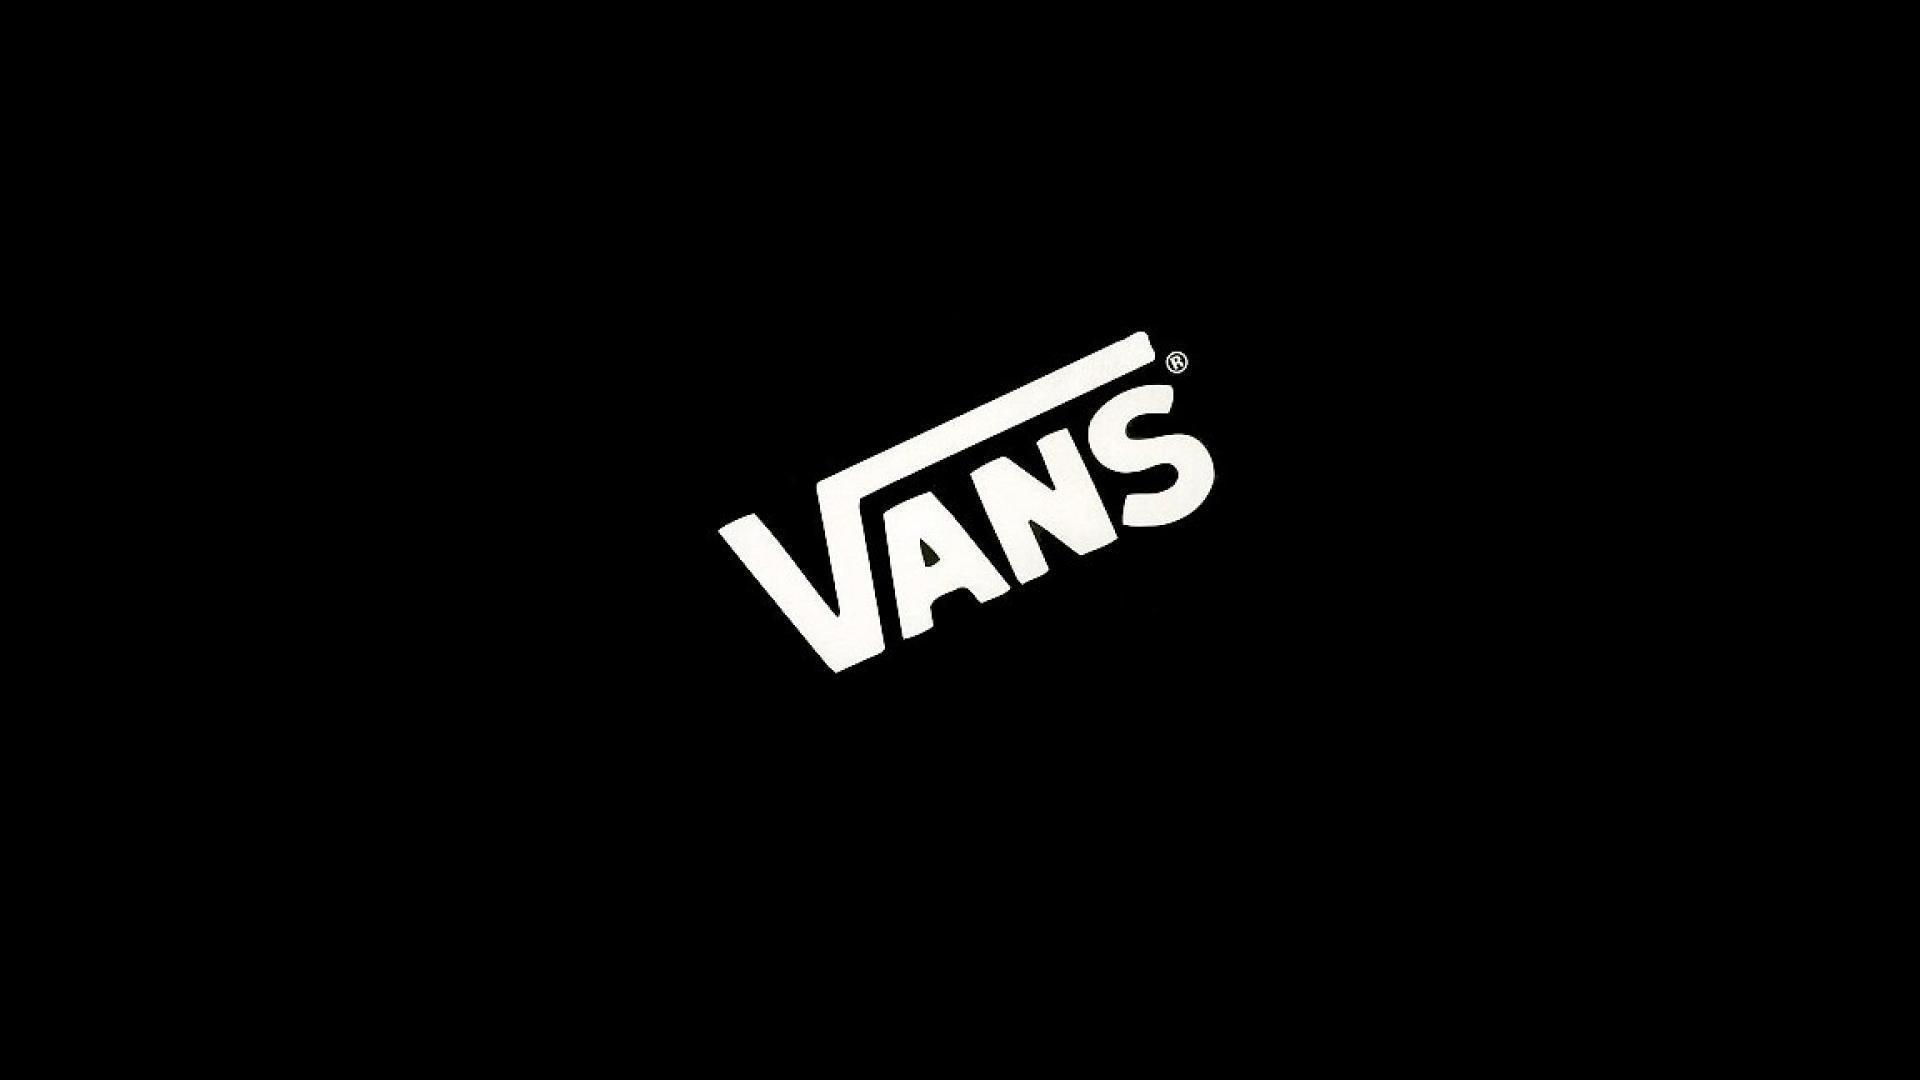 Vans iphone wallpaper tumblr - Wallpapers For Vans Logo Iphone Wallpaper